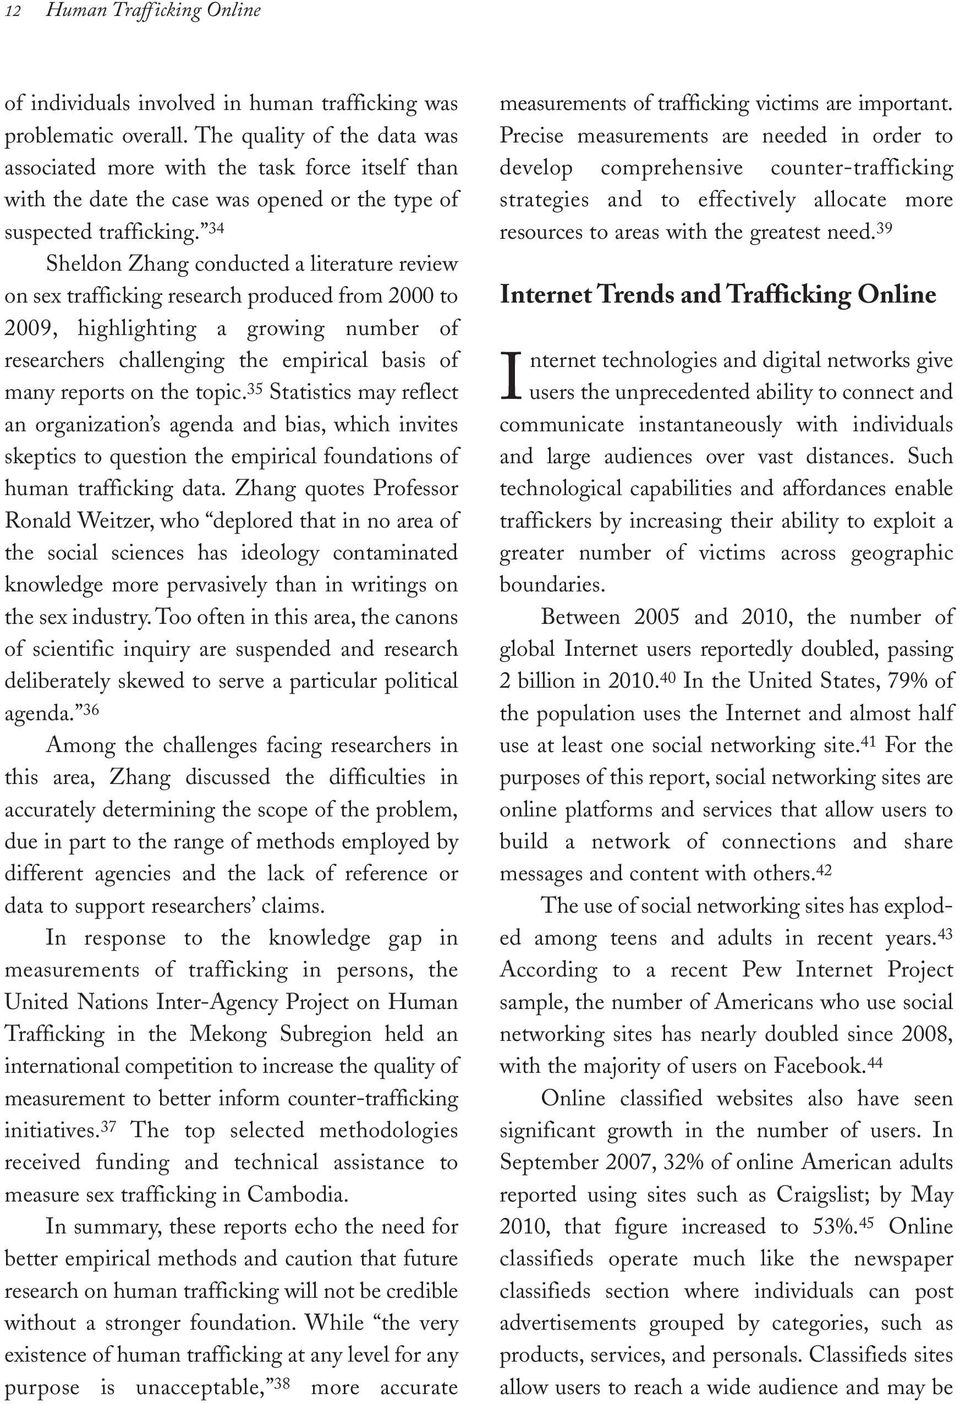 34 Sheldon Zhang conducted a literature review on sex trafficking research produced from 2000 to 2009, highlighting a growing number of researchers challenging the empirical basis of many reports on